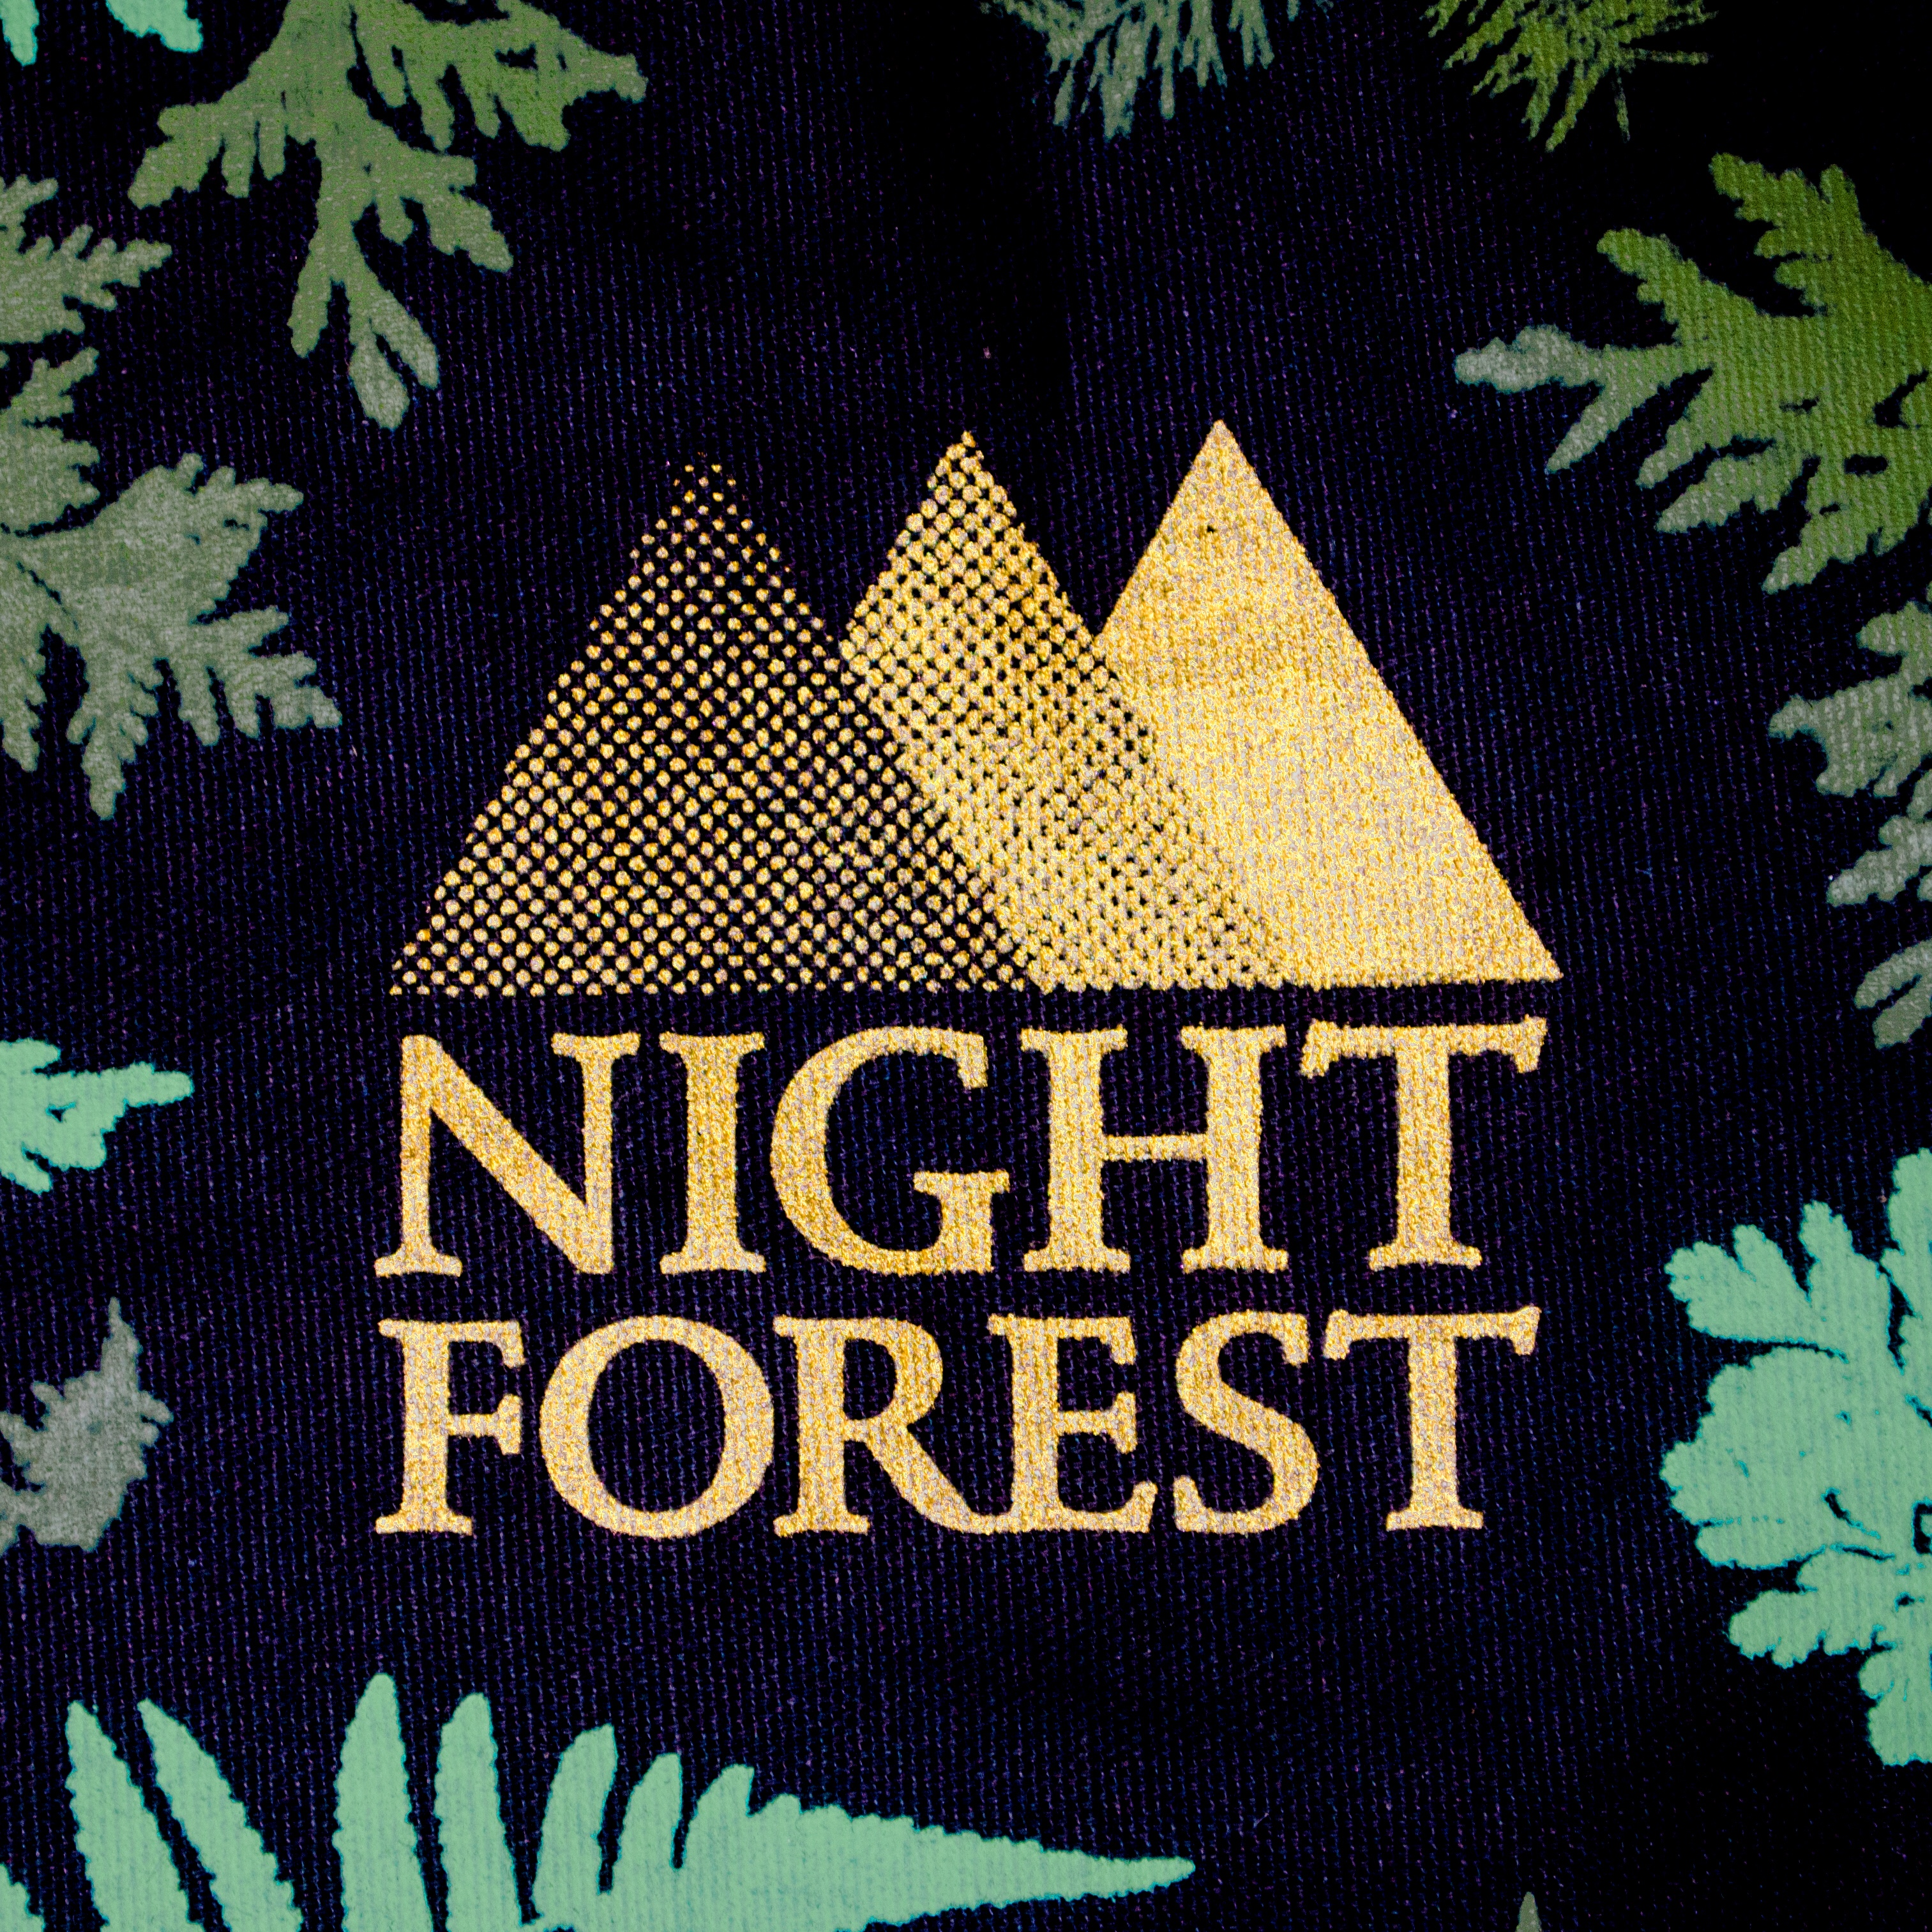 Night Forest logo, screenprinted in gold on a black fabric with dark teal branches around